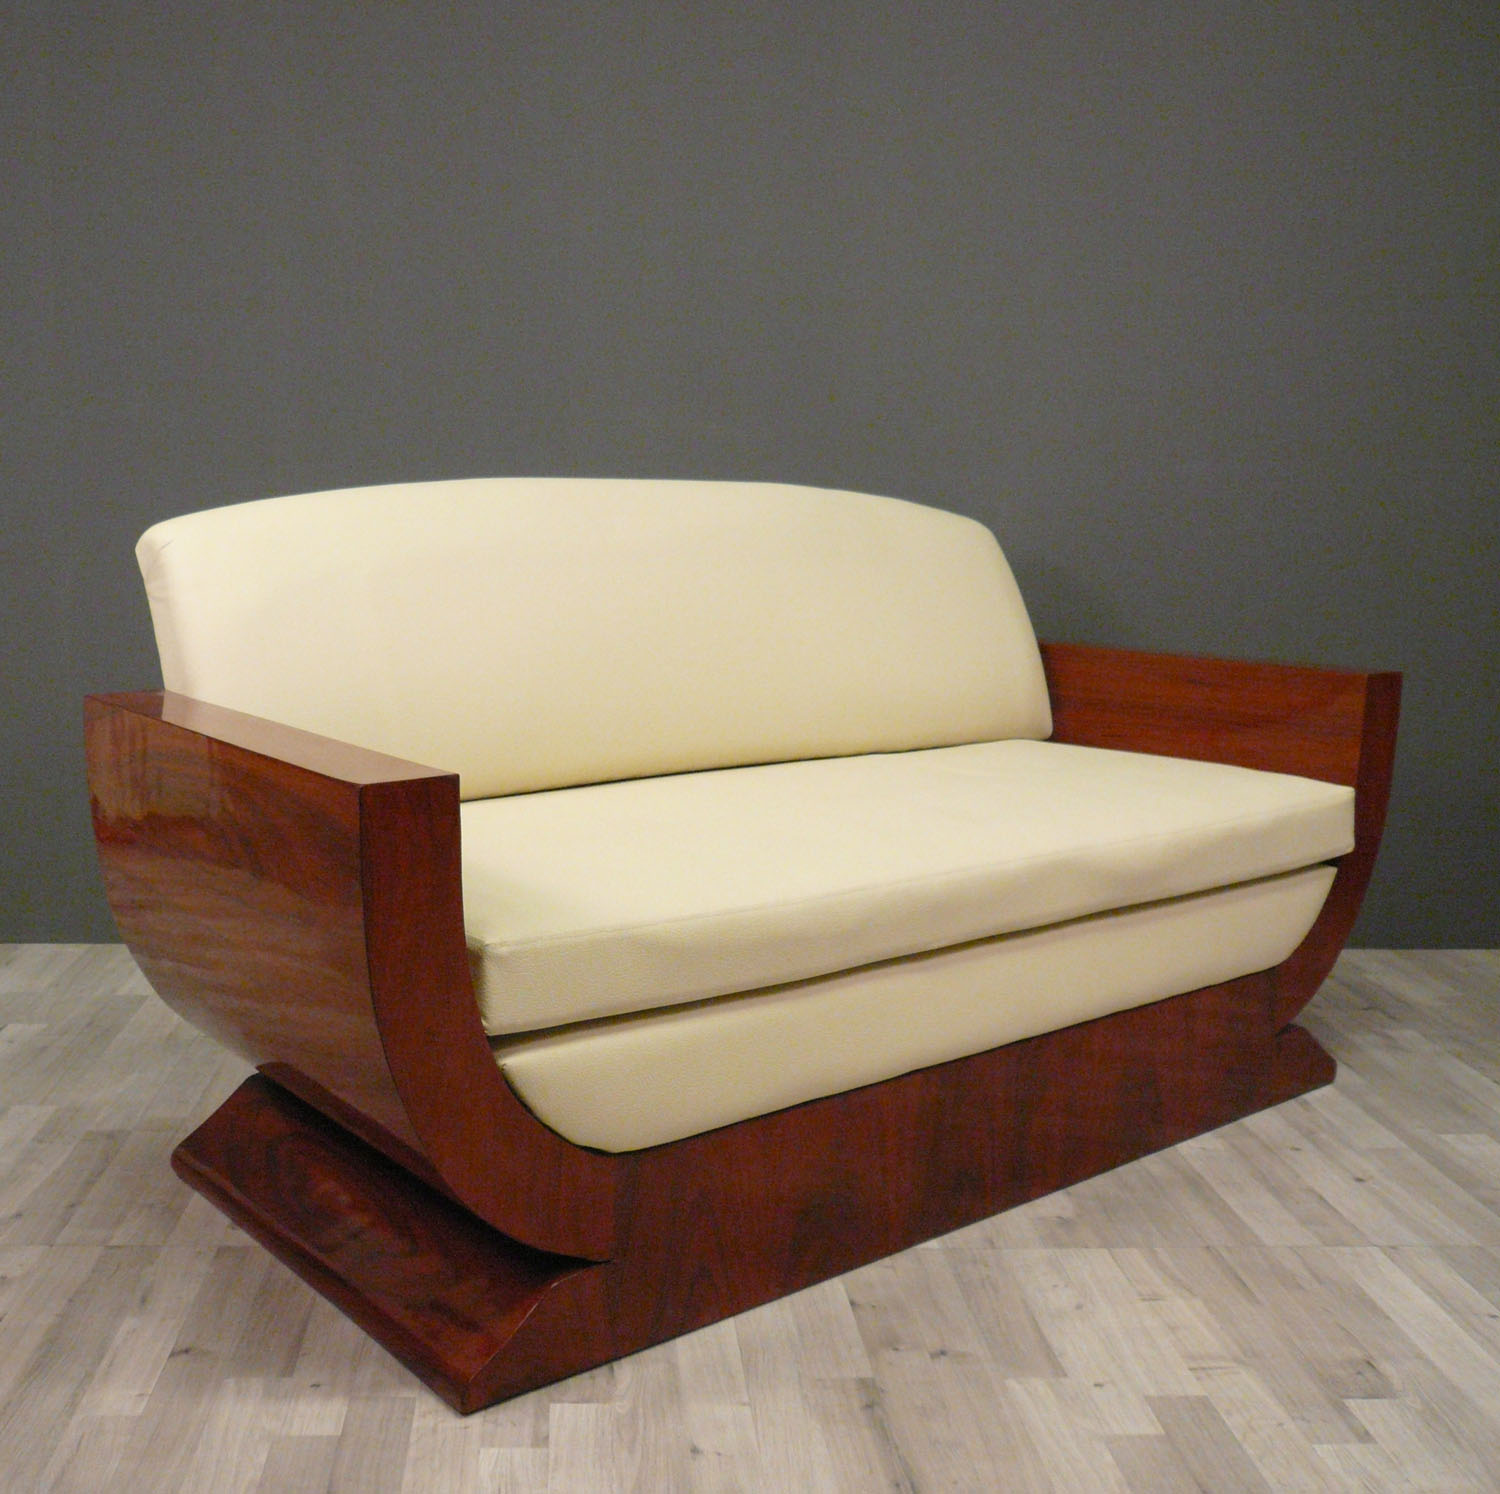 Art deco sofa art deco furniture - Magasin decoration pas cher ...